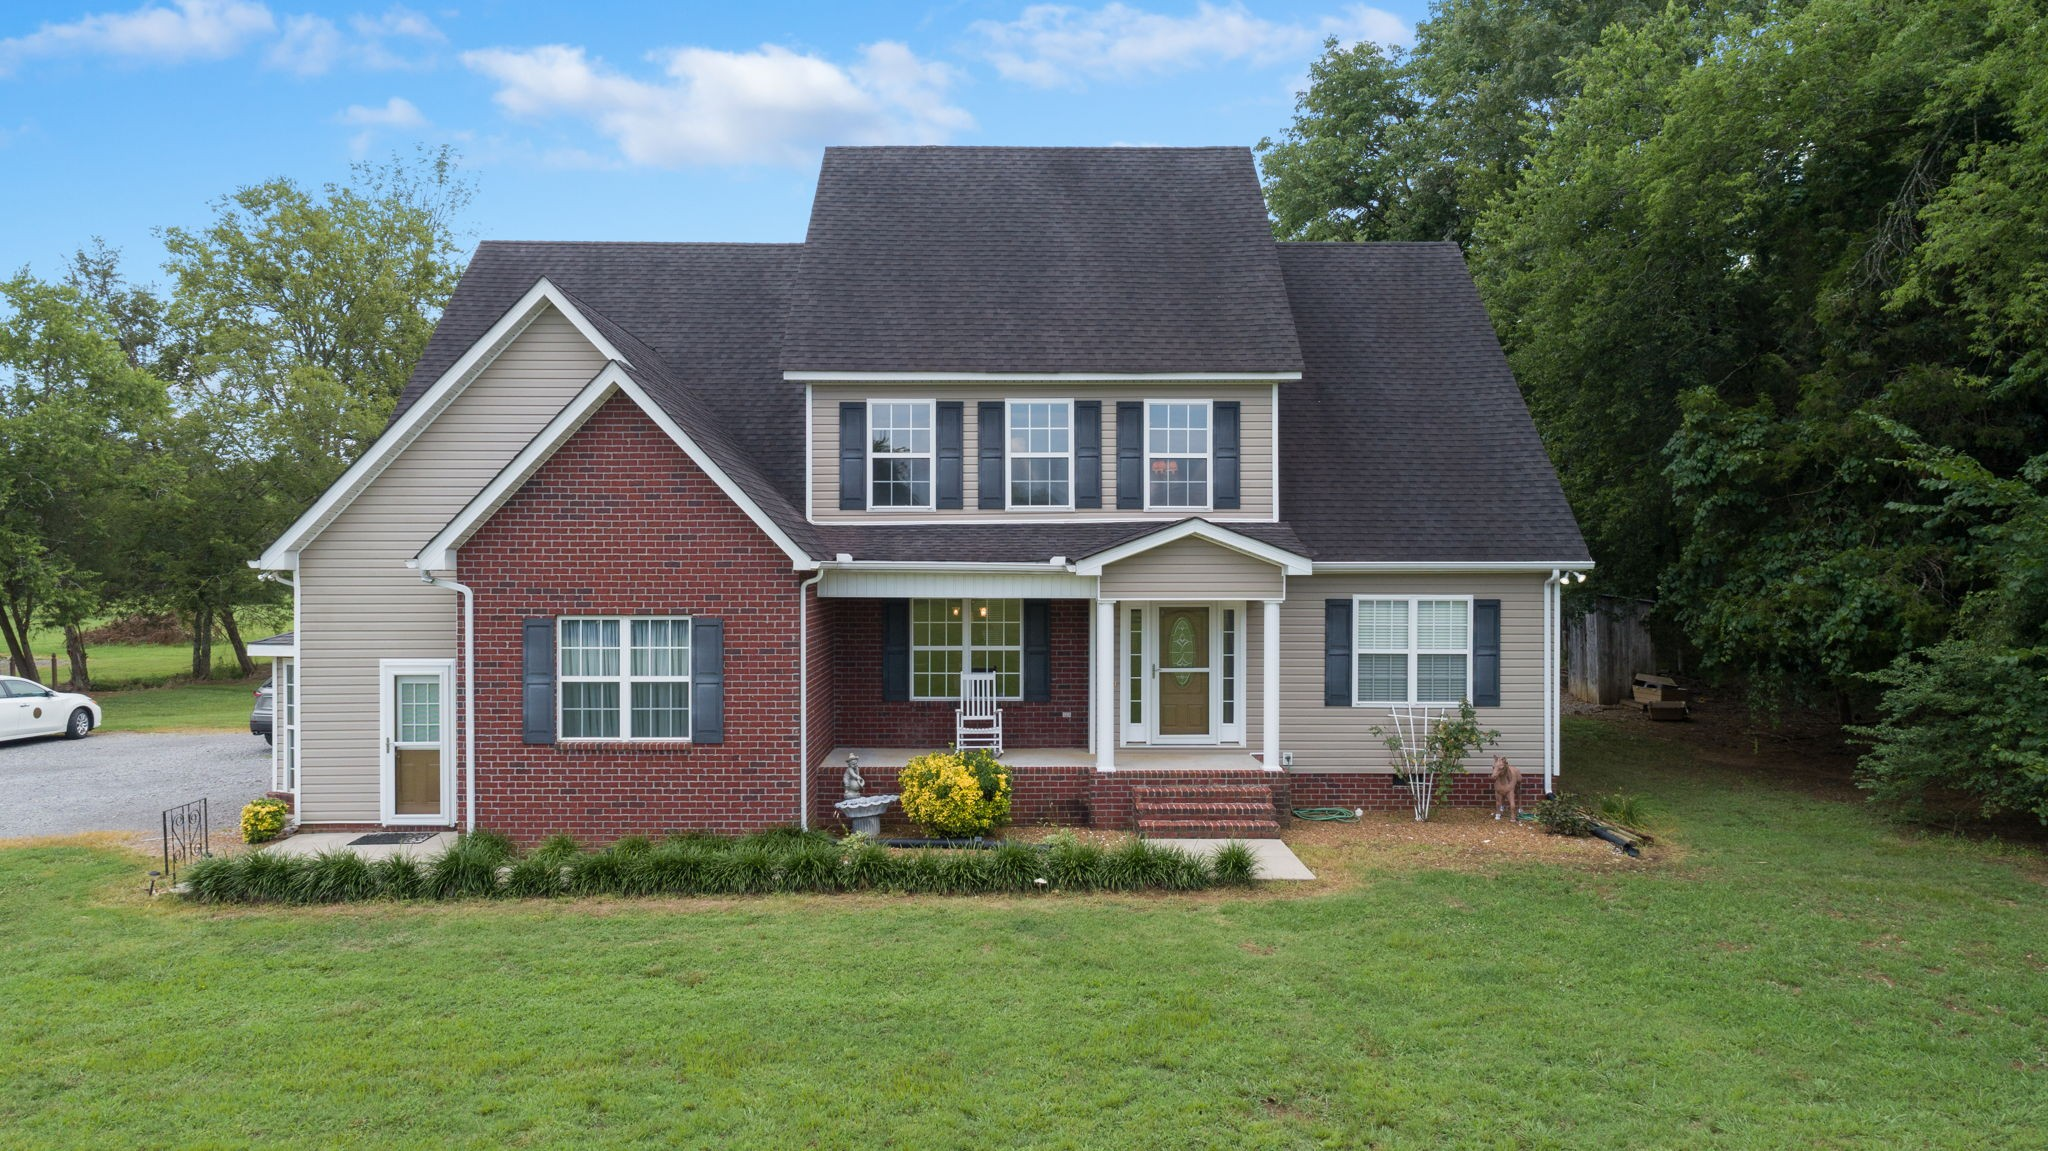 7850 Midland Rd Property Photo - Christiana, TN real estate listing